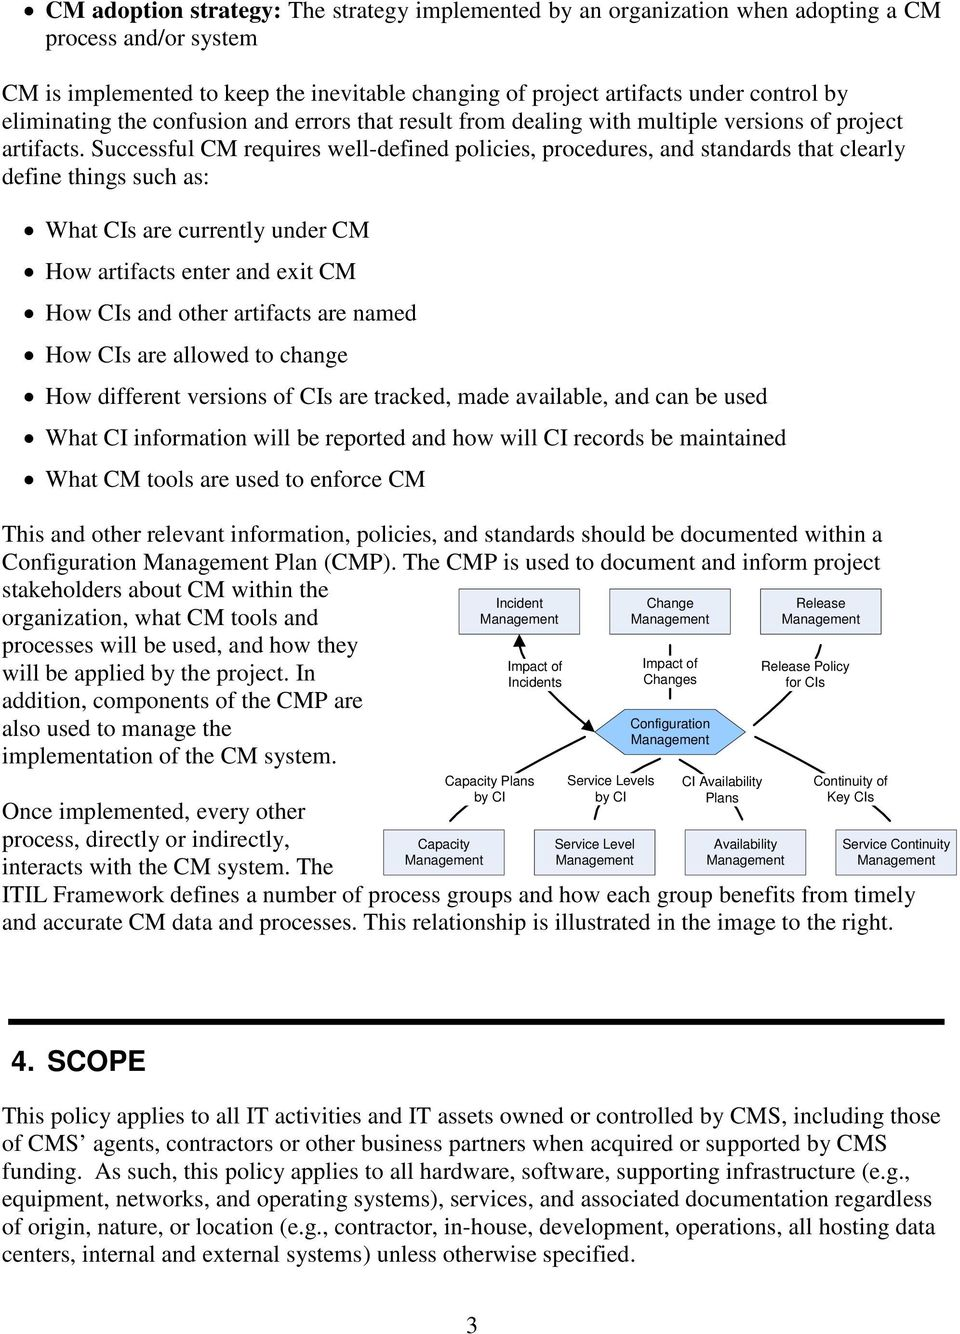 Successful CM requires well-defined policies, procedures, and standards that clearly define things such as: What CIs are currently under CM How artifacts enter and exit CM How CIs and other artifacts